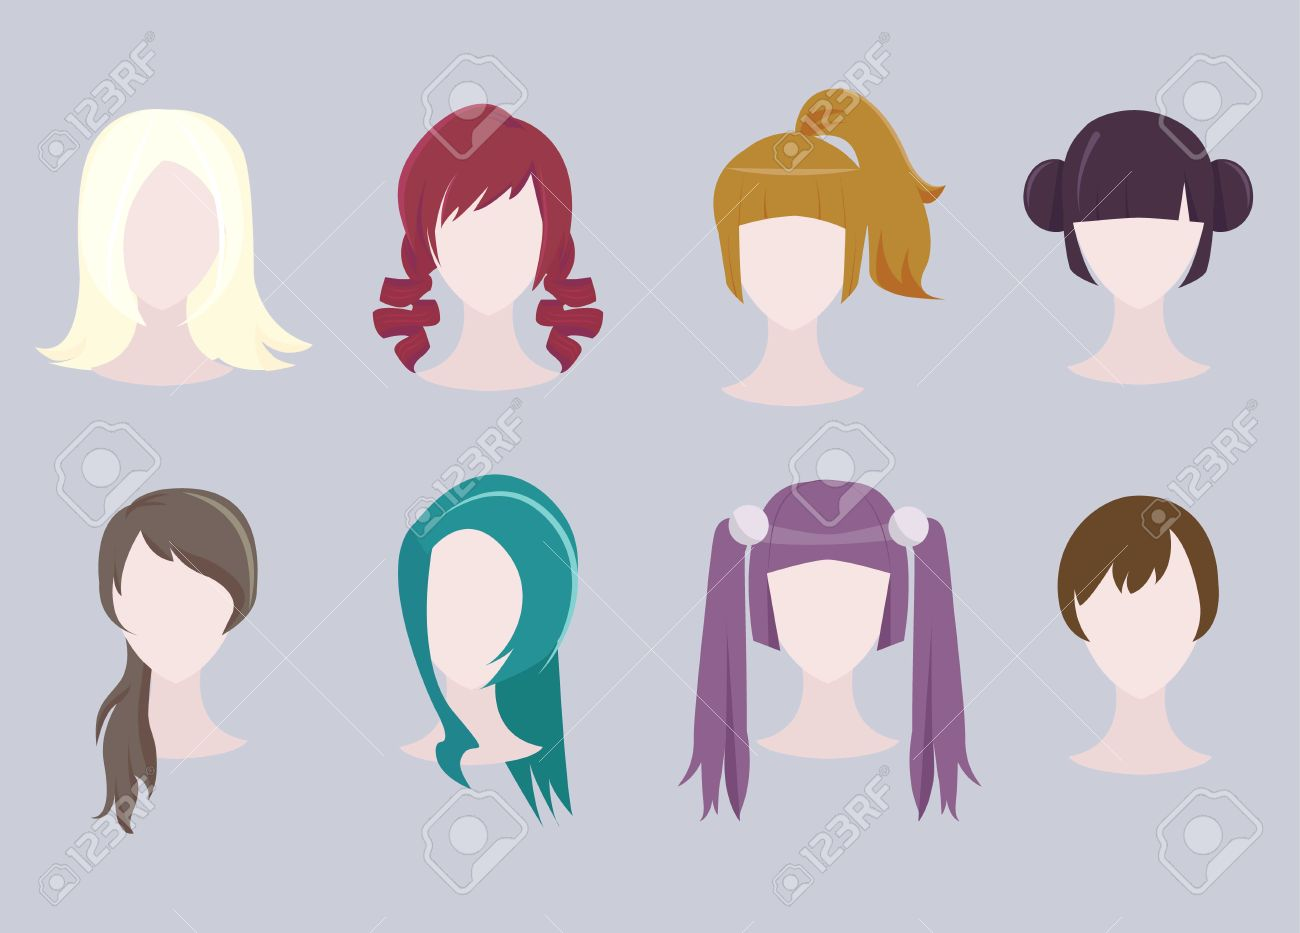 set of different cartoon hairstyles royalty free cliparts, vectors